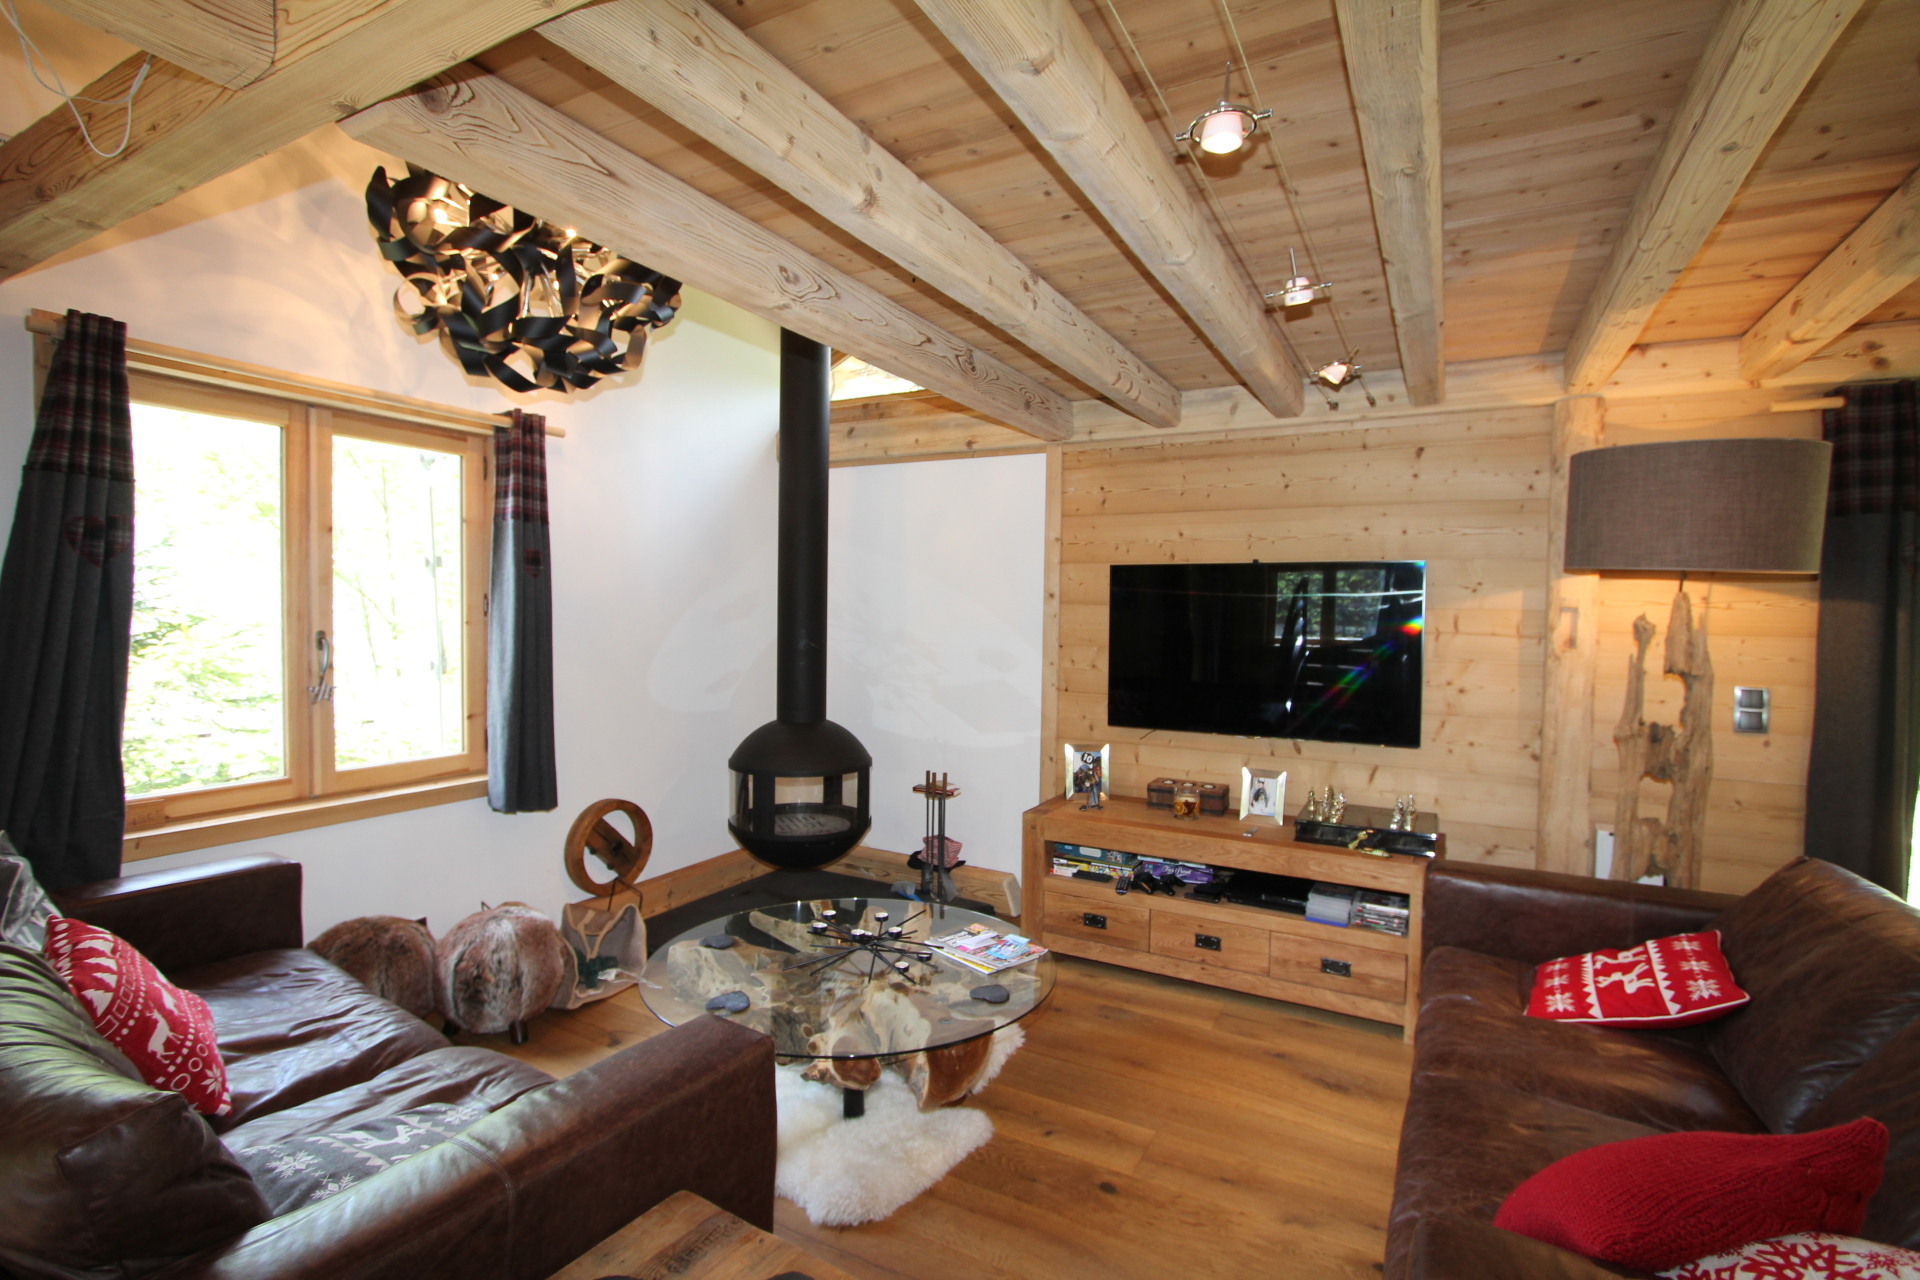 Stunning new living area, 1960s chalet renovated | Renovation Solutions, near Samoens.